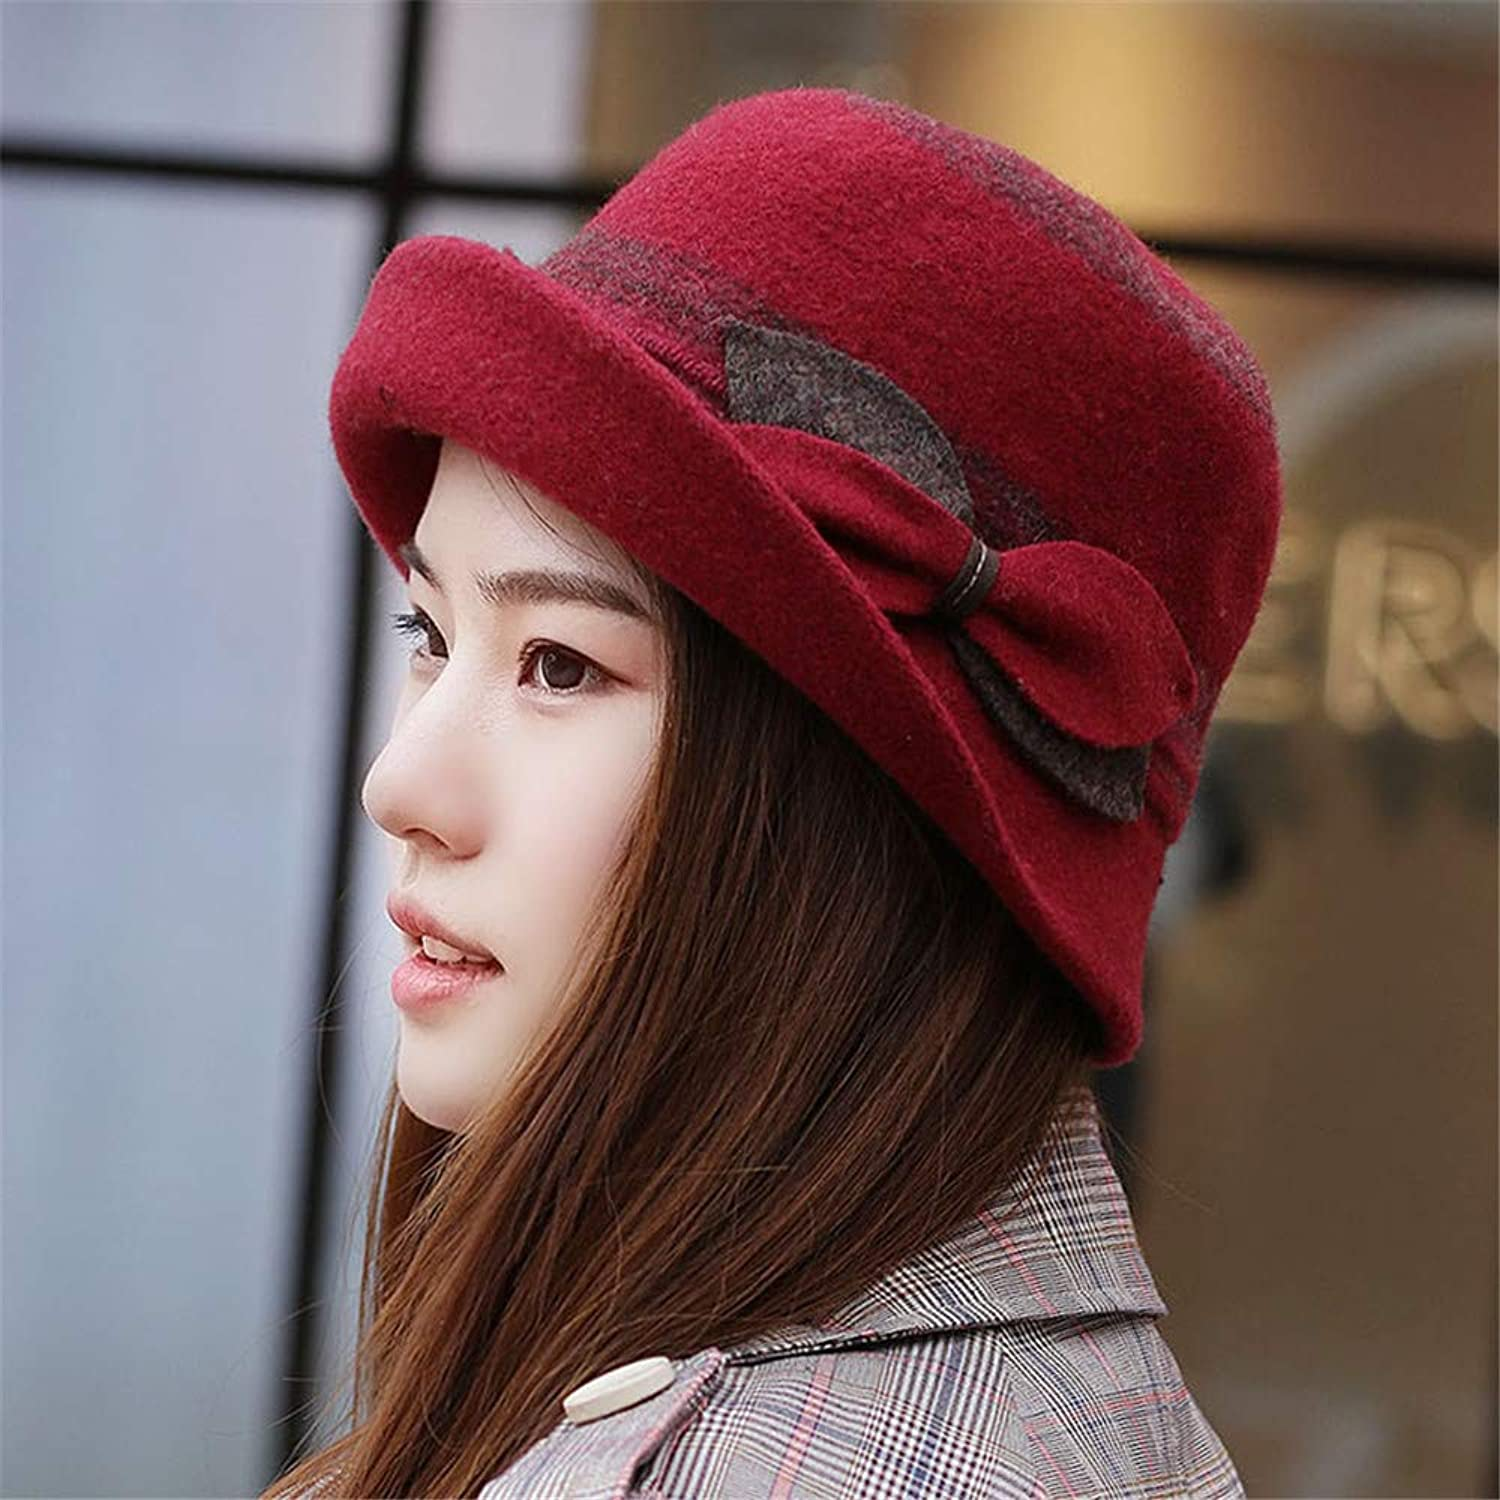 Women's Hat Autumn Winter Basin Hat Flat Top Fisherman Hat Floral Hat Hat Hat Etc